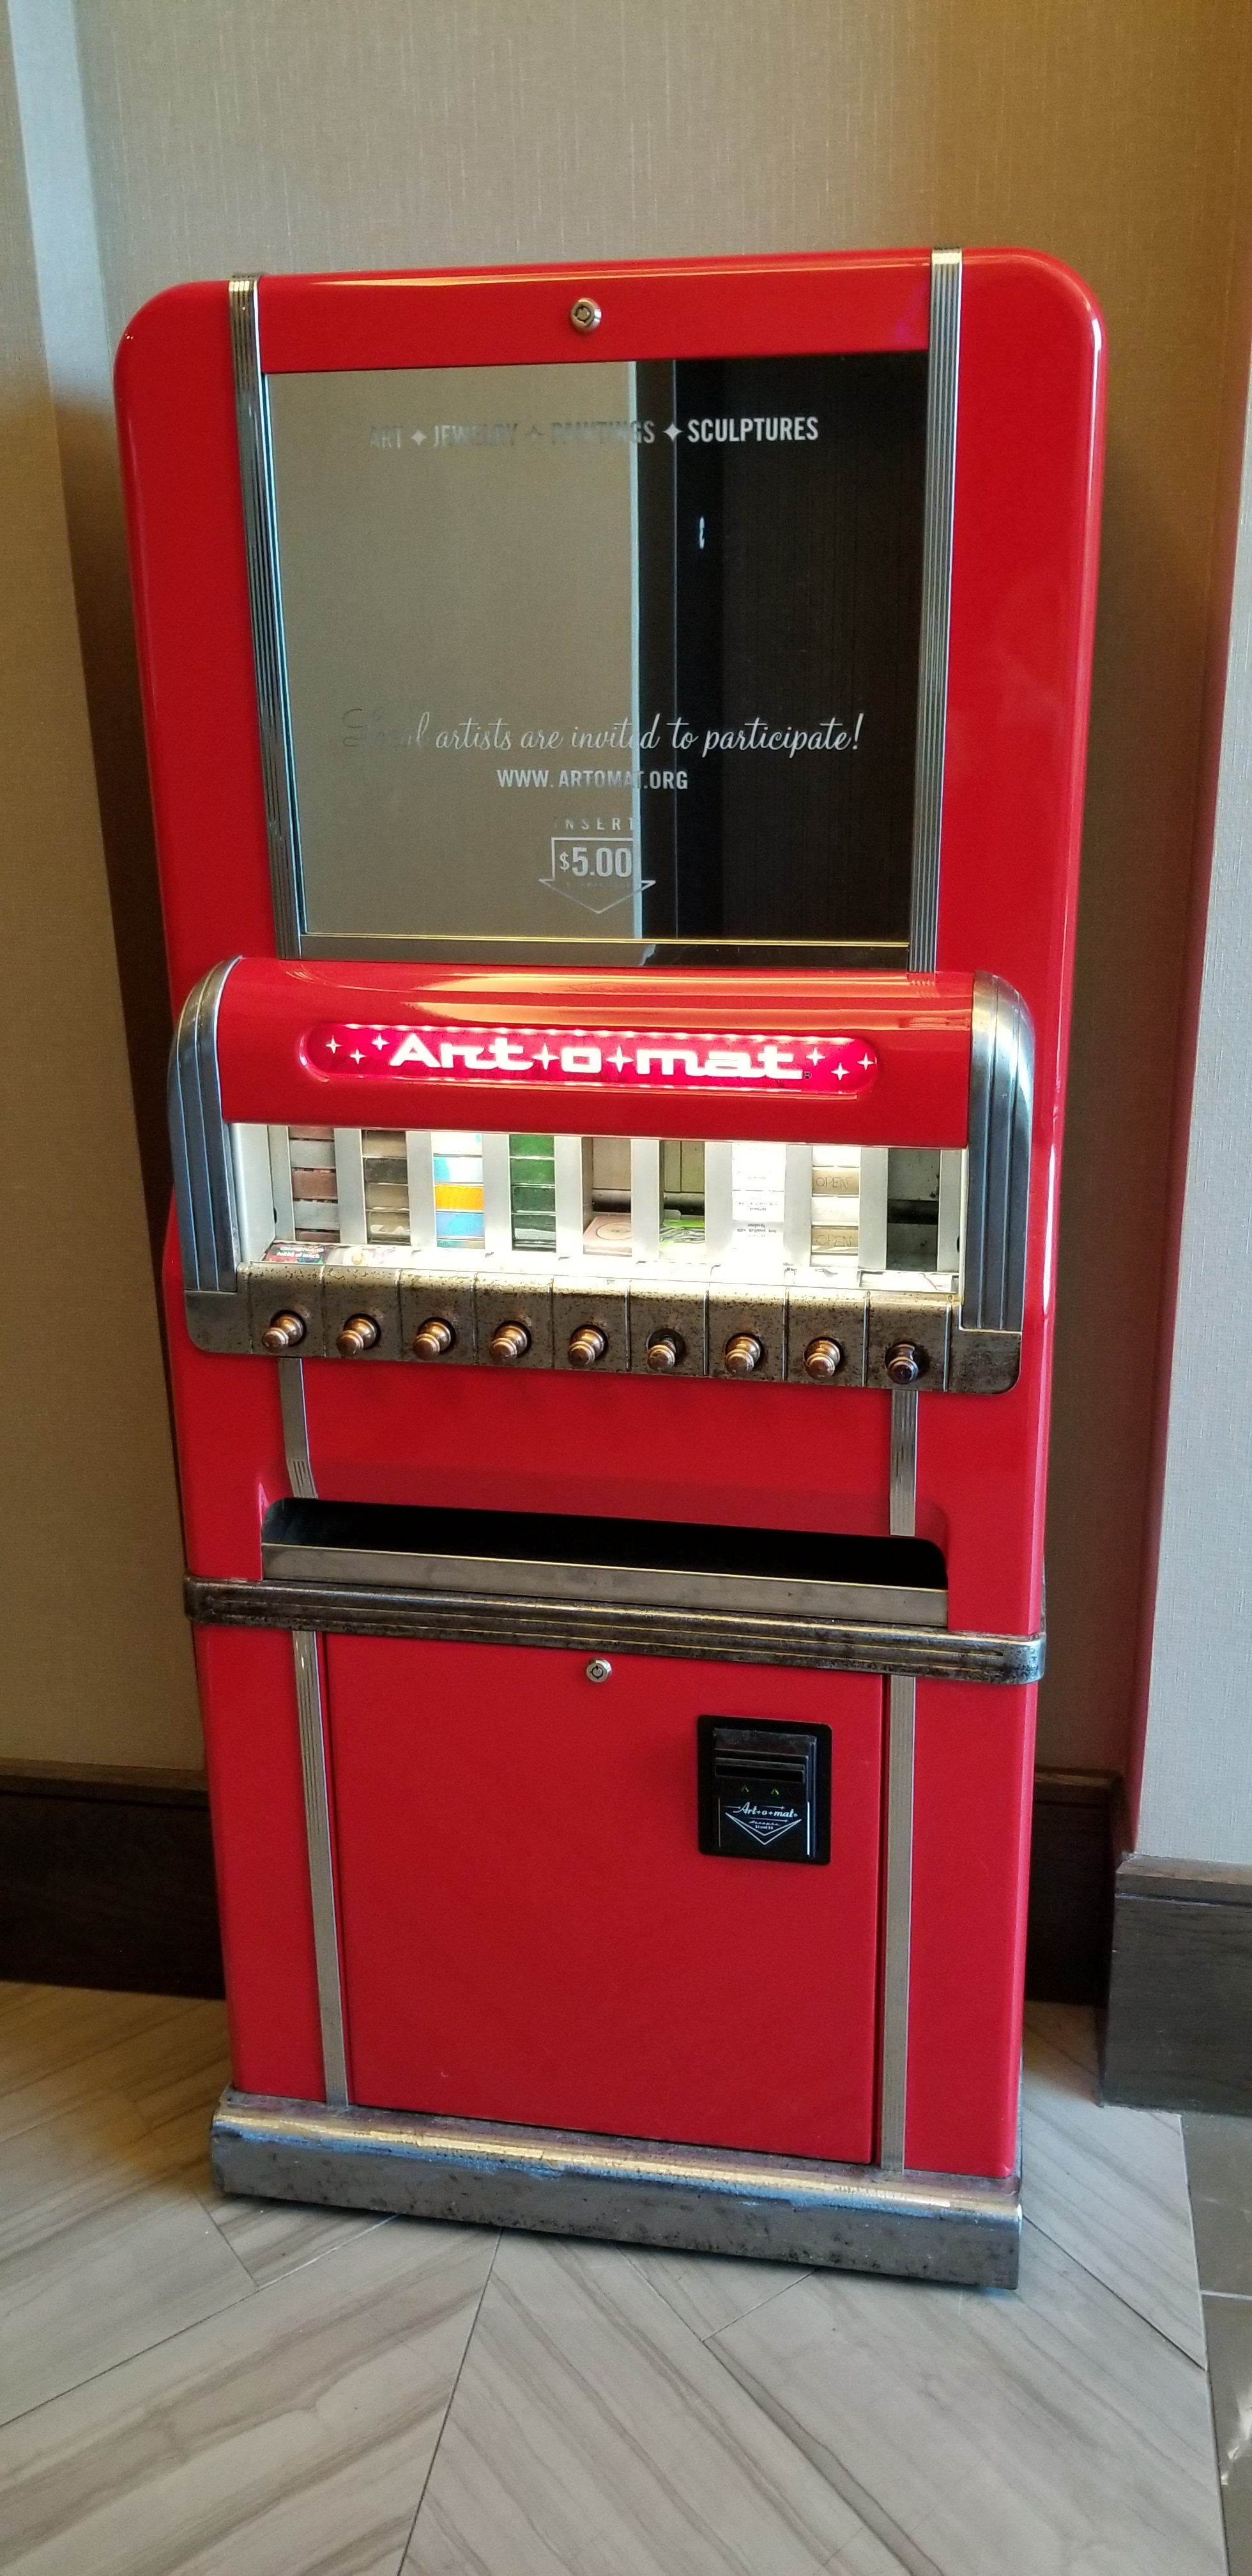 Red Art-O-Mat machine that looks like an old fashioned cigarette vending machine that sells art work